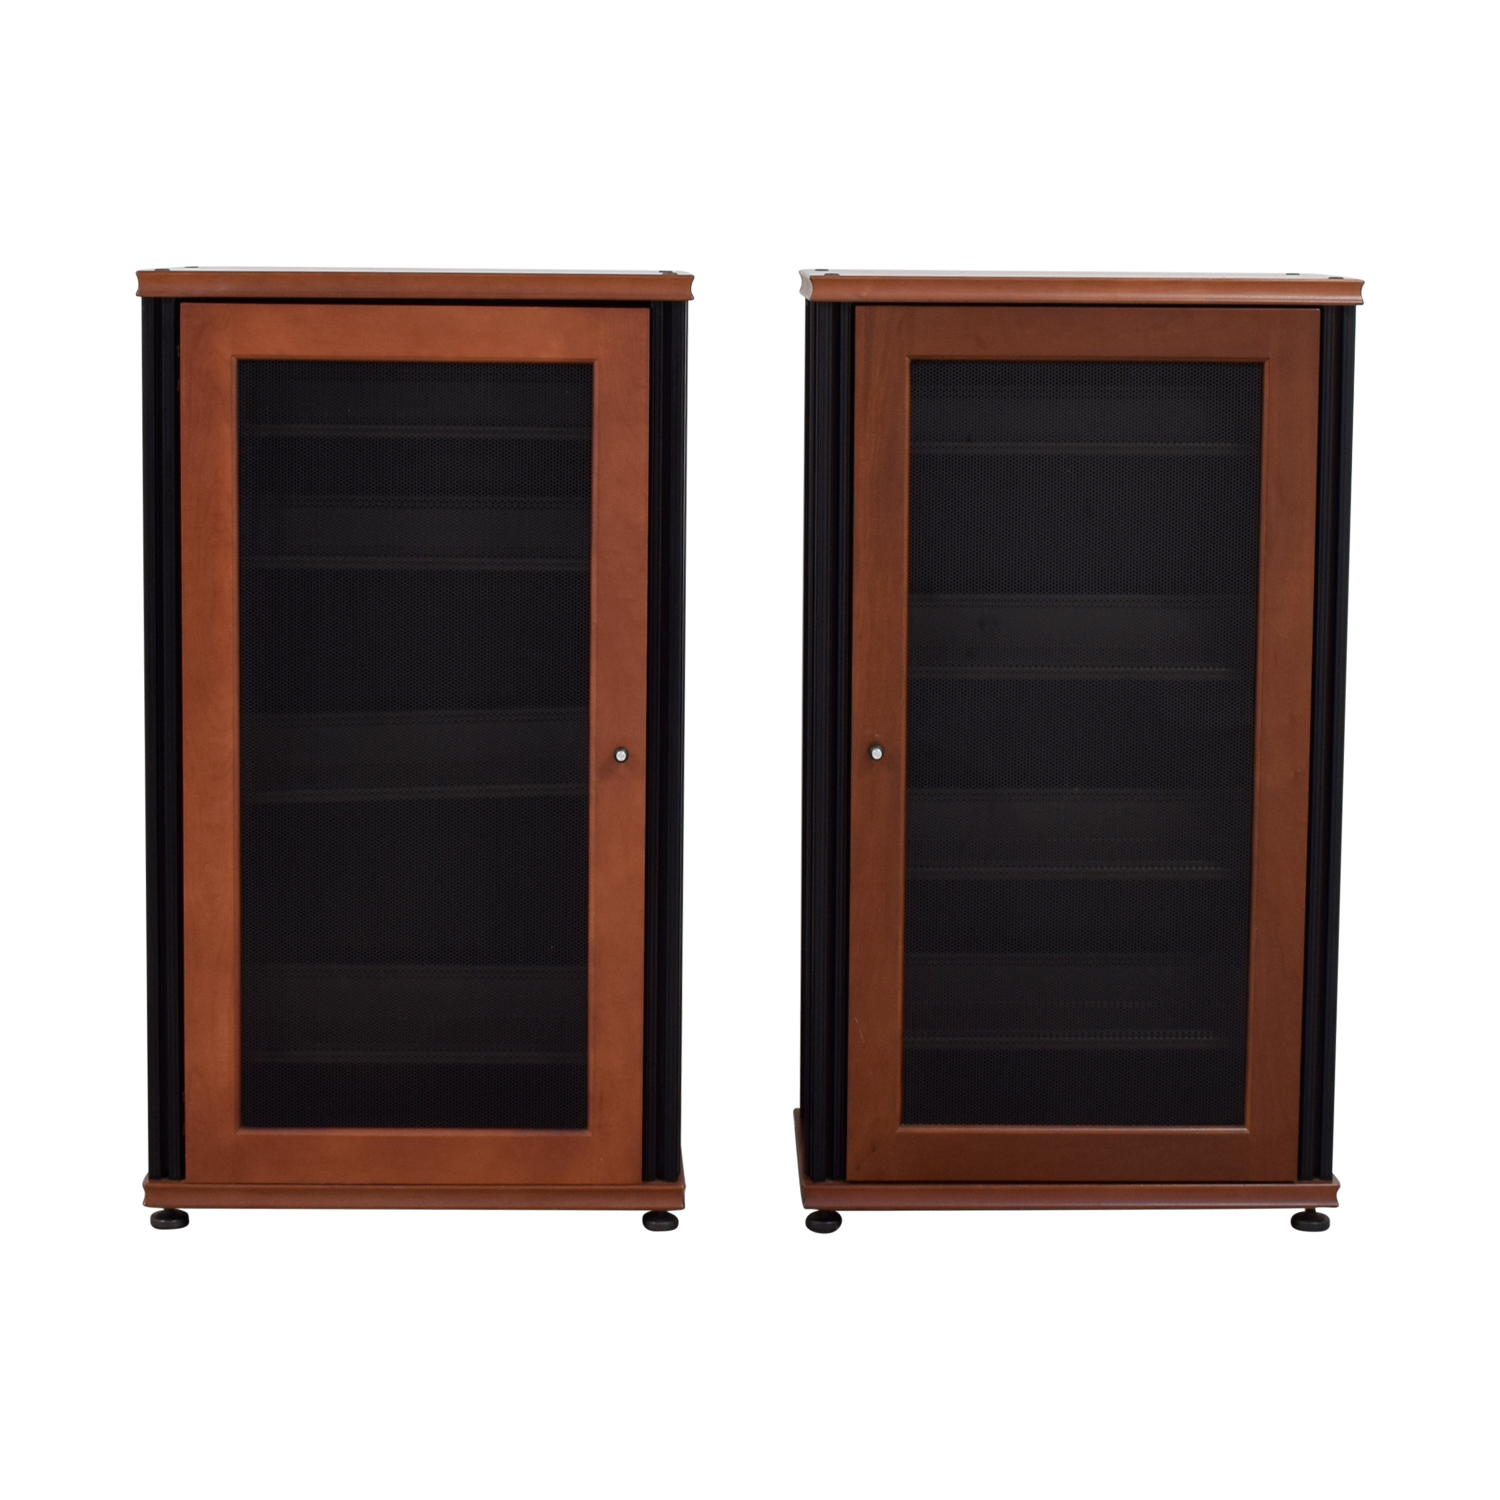 Salamander Designs Synergy Media Cabinets With Gl Doors Bookcases Shelving